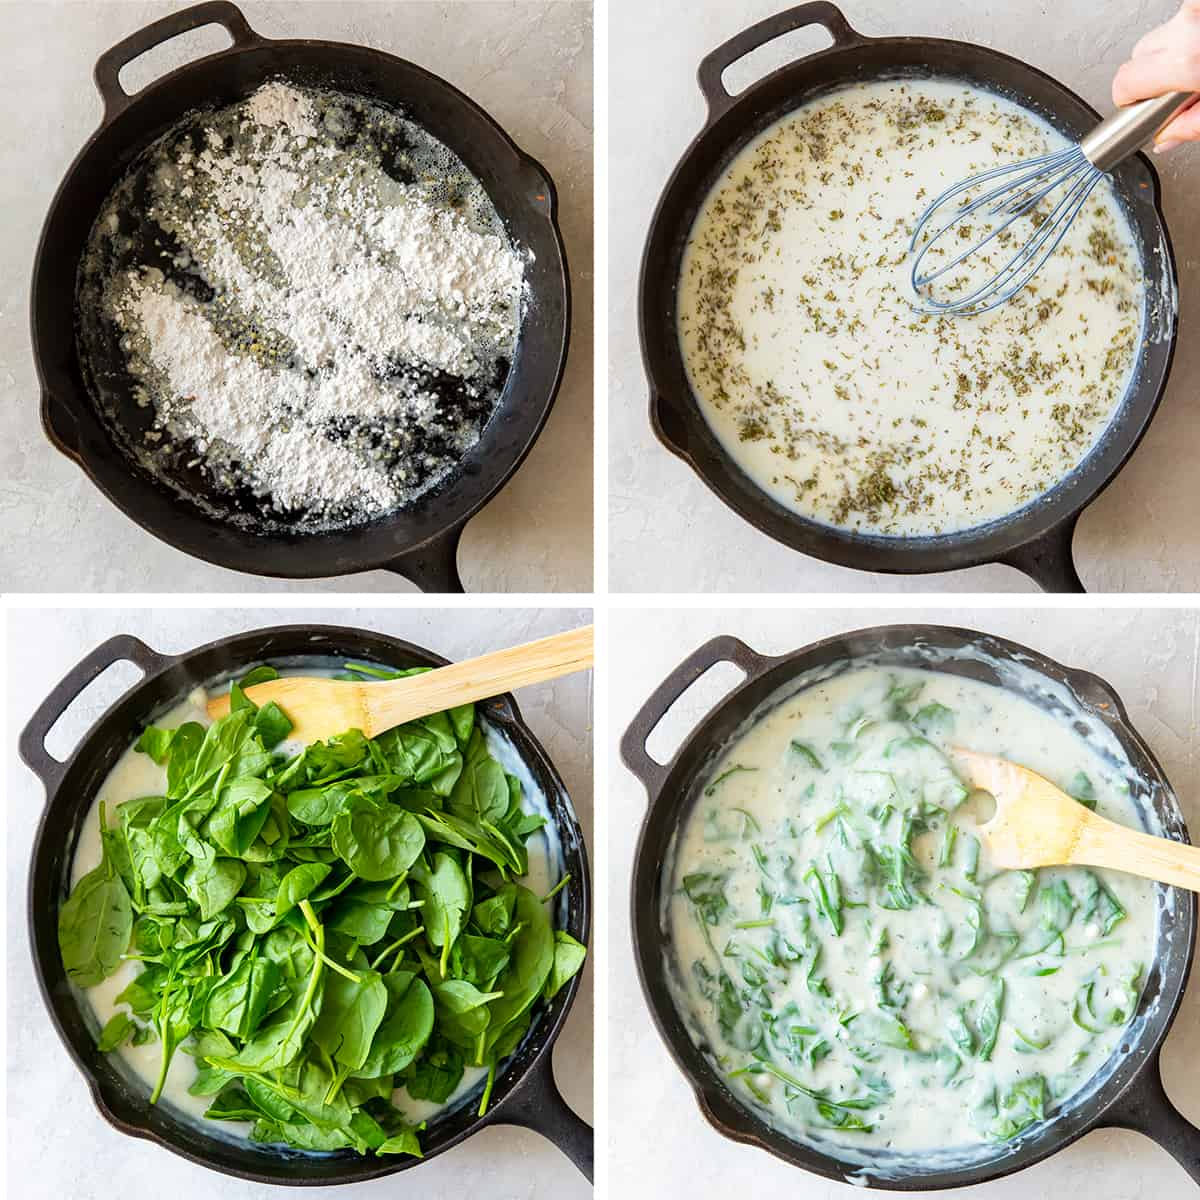 A spinach white sauce being made in a cast iron skillet.